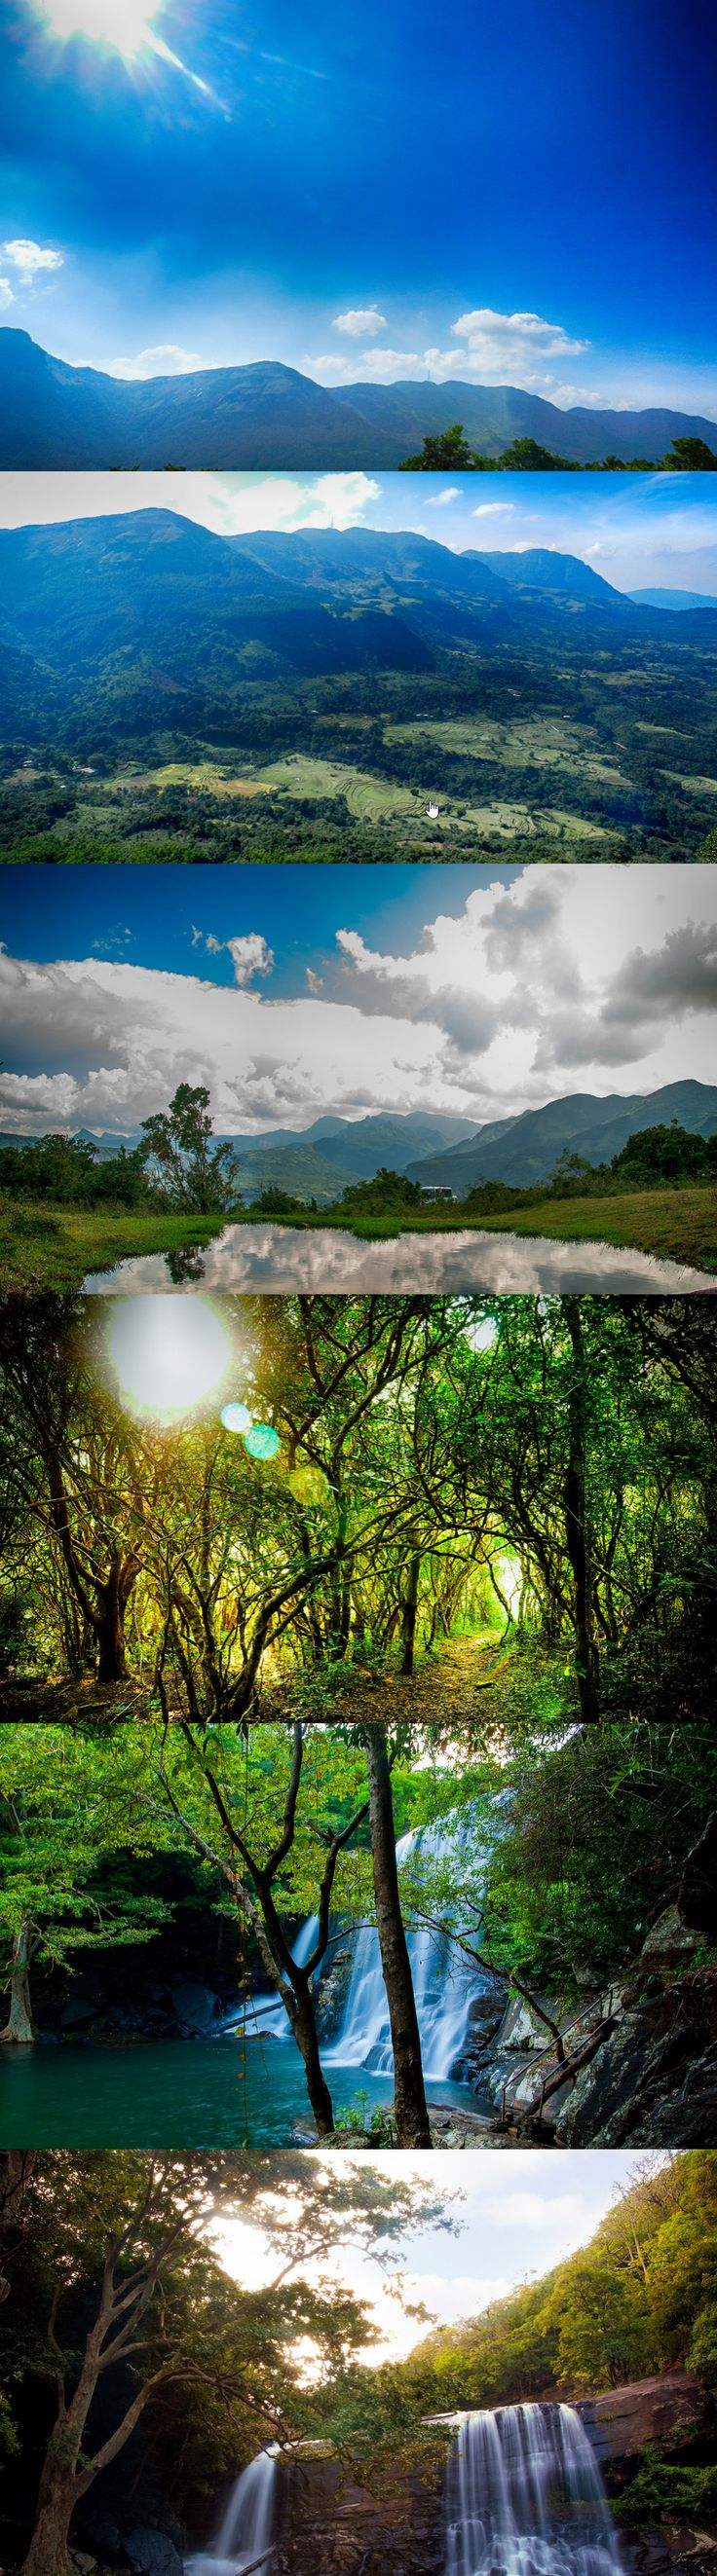 Images from the Knuckles Mountain Range, Sri Lanka #SriLanka #Mountains #Knuckles  Orignal images: by https://www.flickr.com/photos/charithmania/